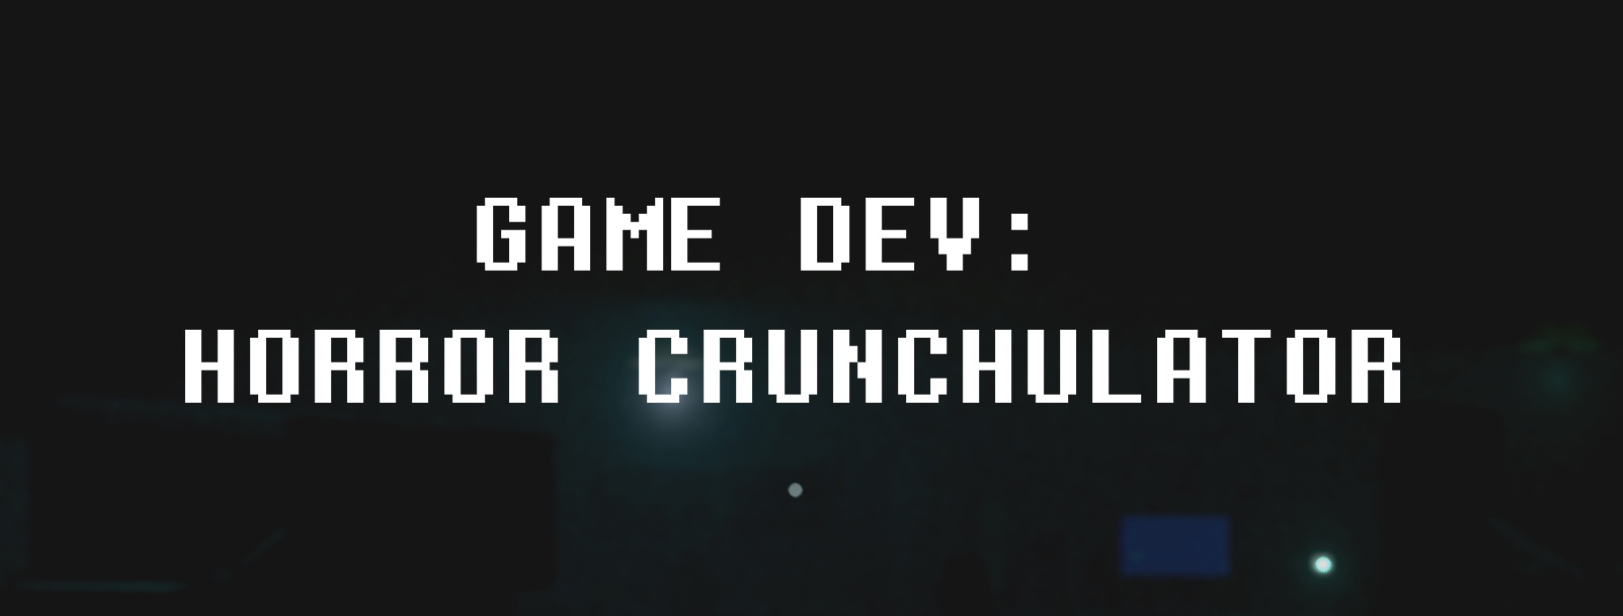 Game Dev: Horror Crunchulator